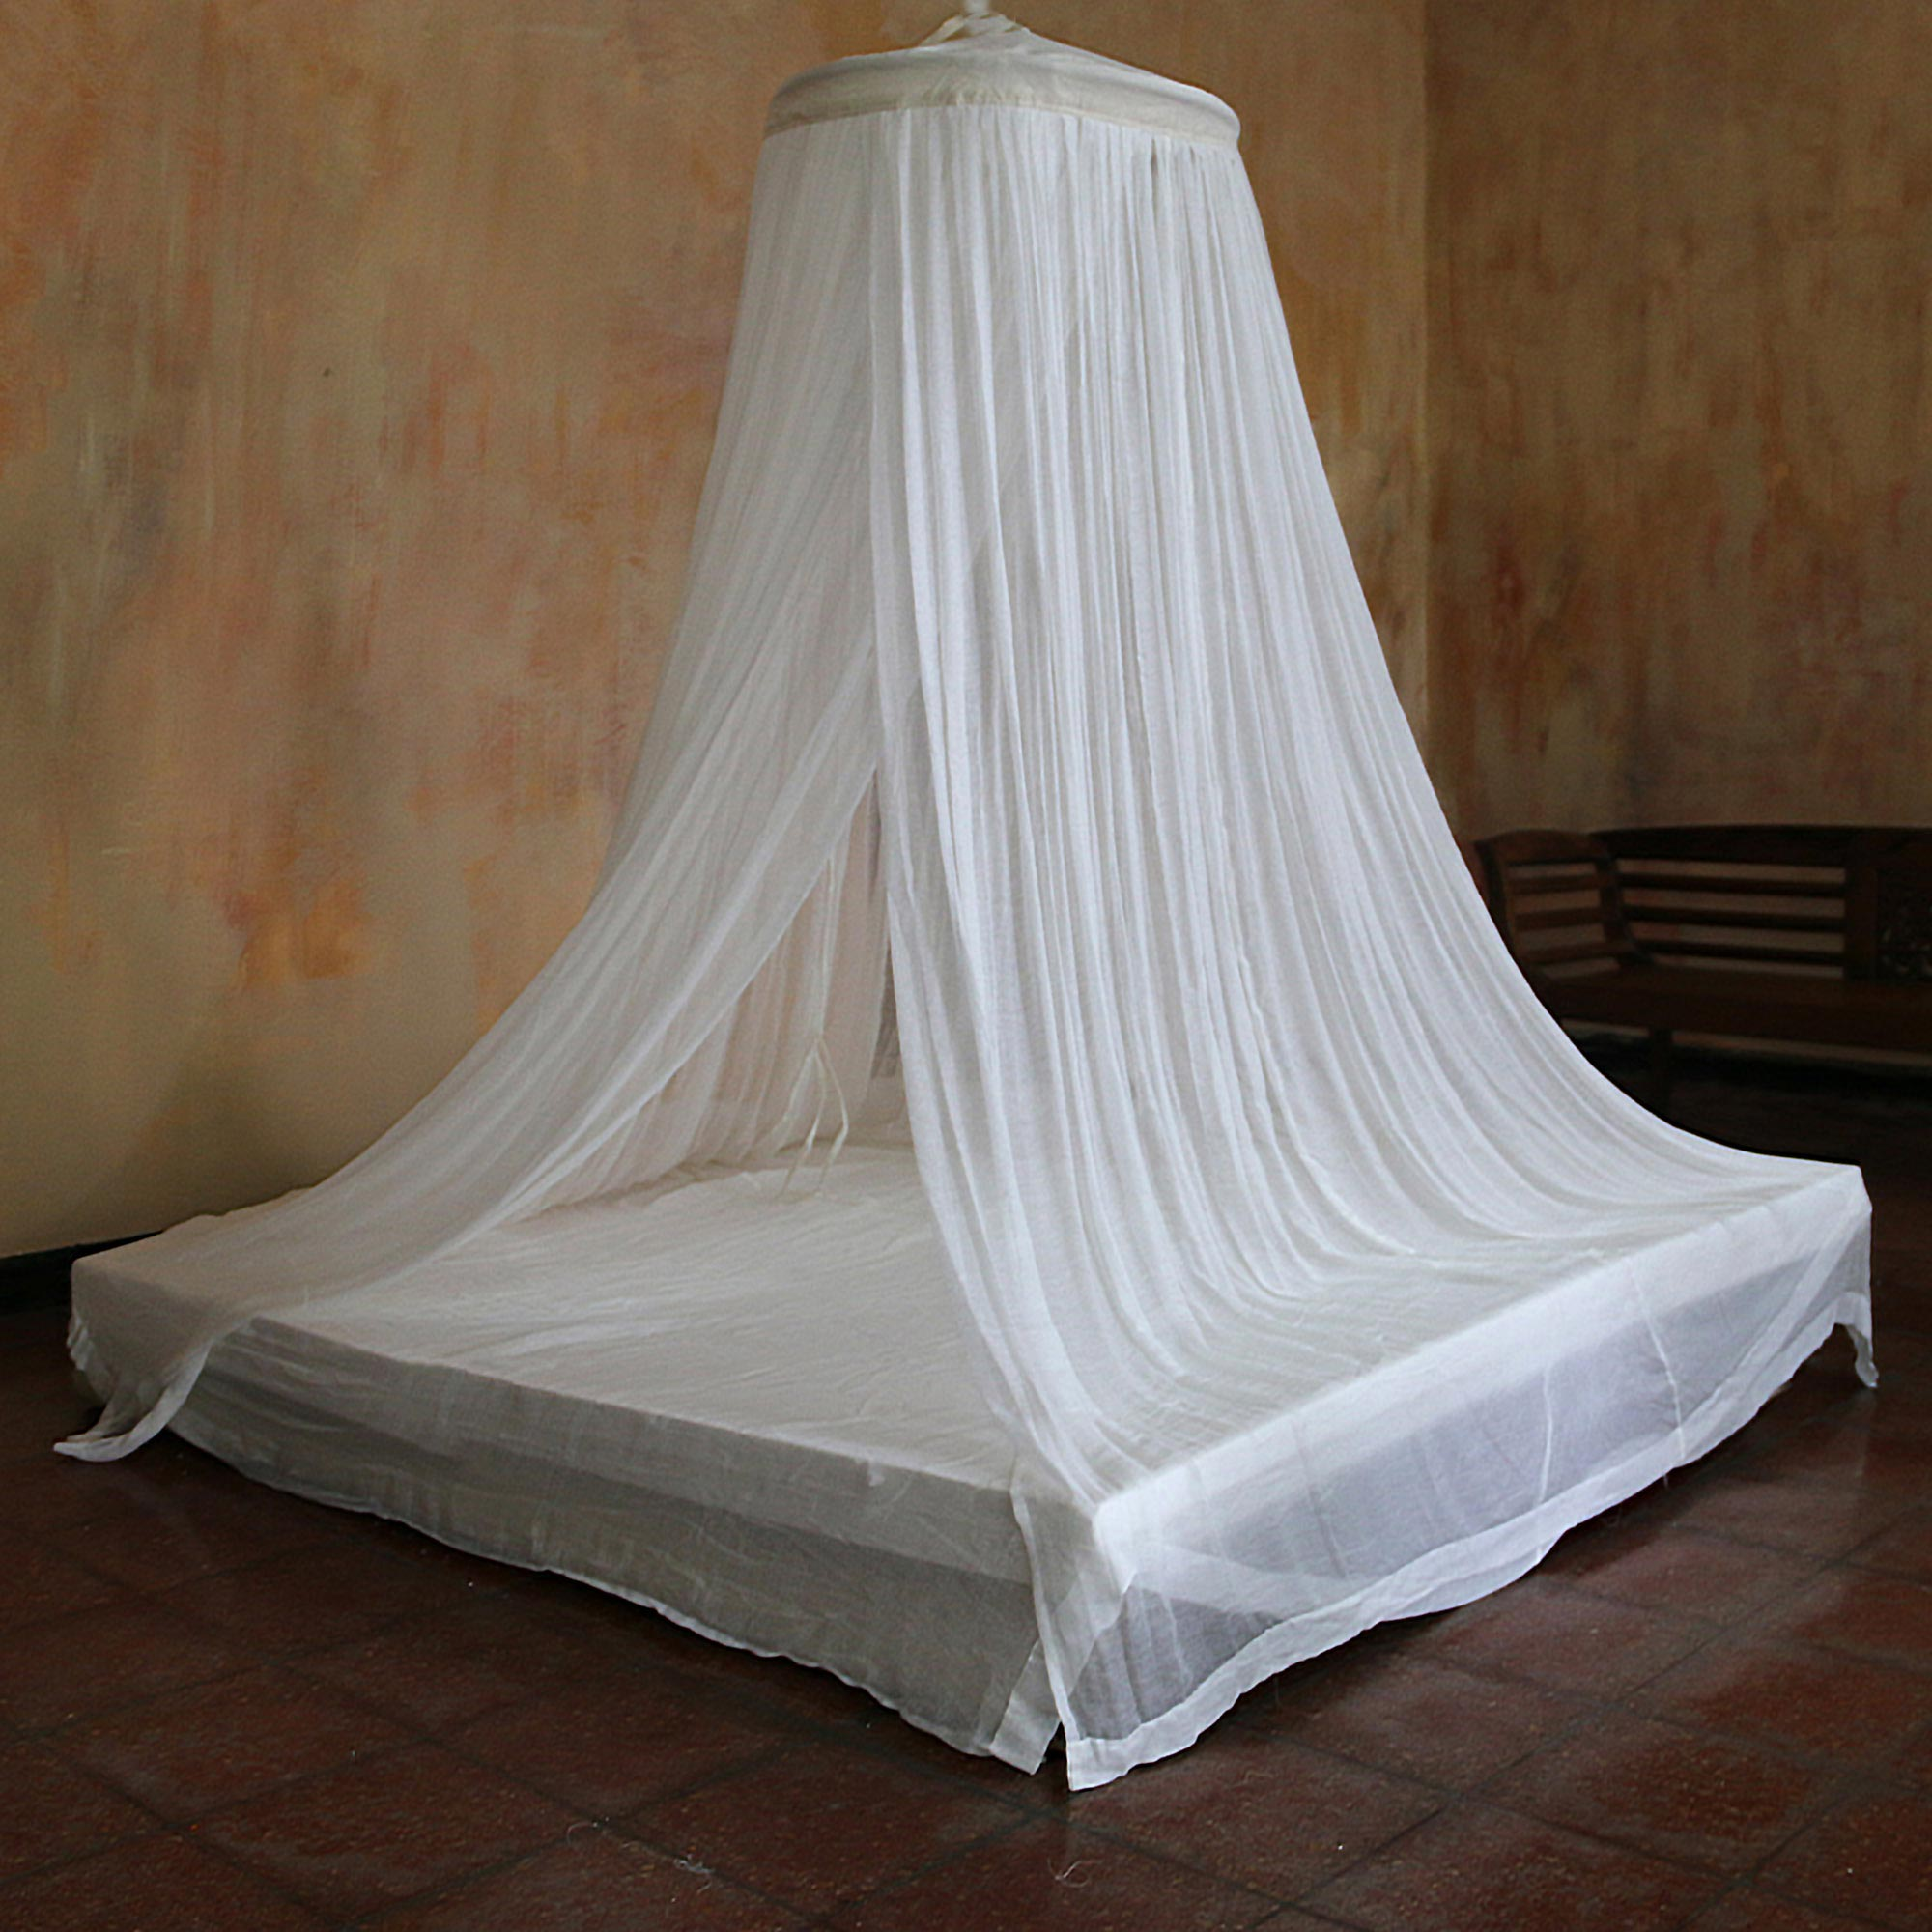 - Handmade White Cotton Bed Canopy With Bamboo Ring - Ethereal Dream